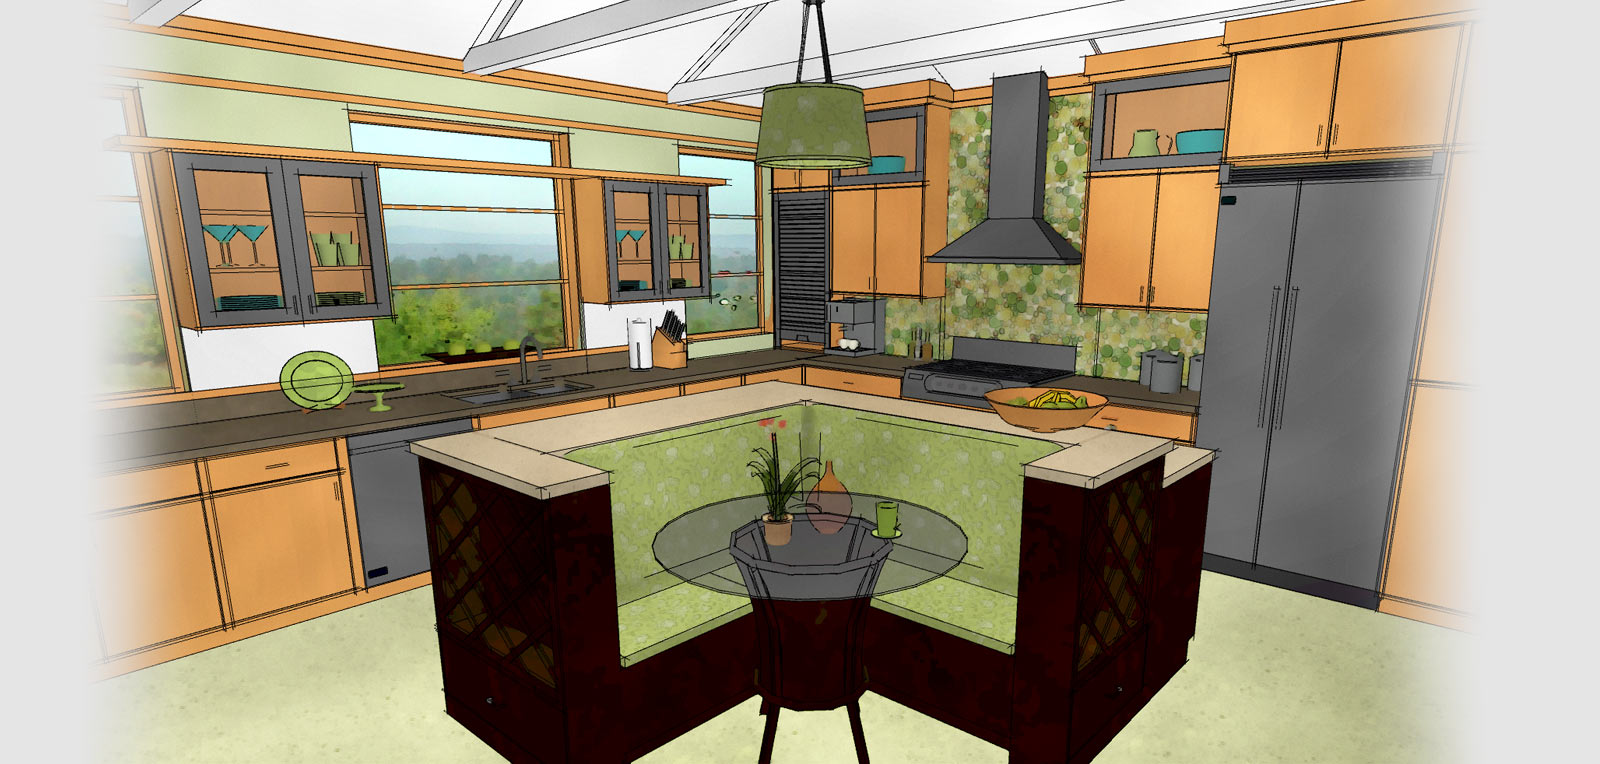 kitchen bath design your kitchen Technical drawing of a kitchen generated by Home Designer